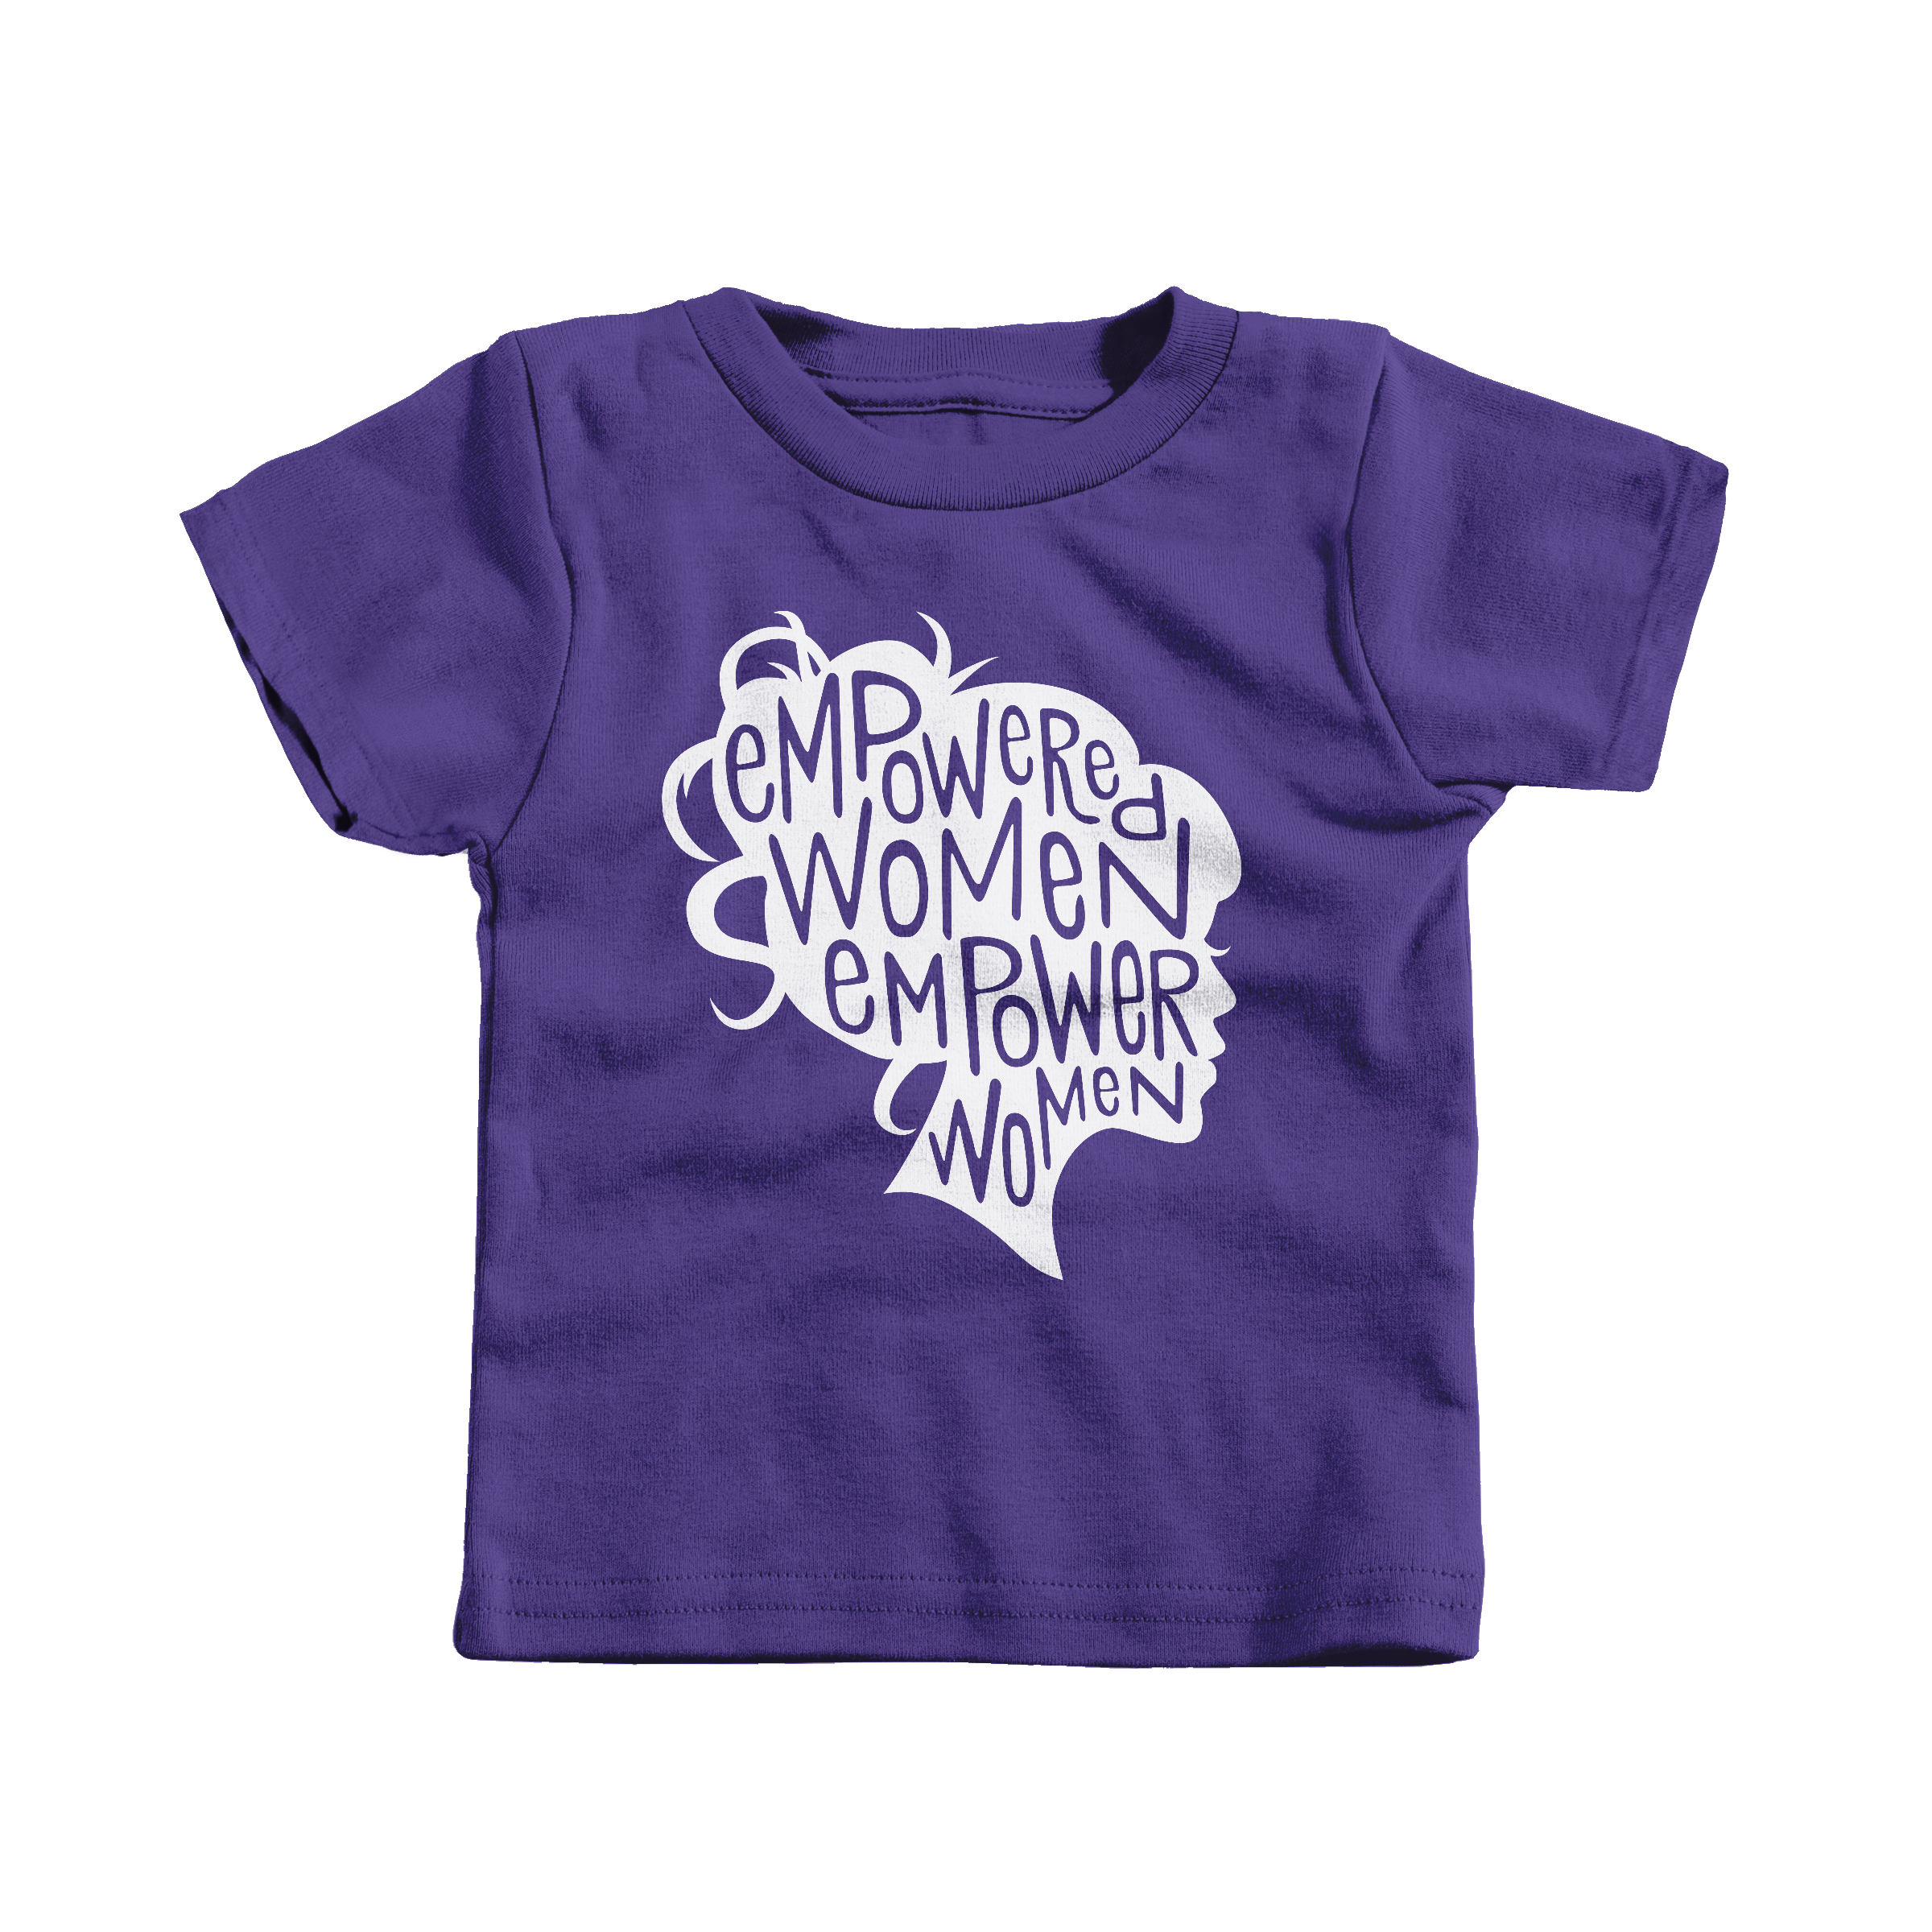 Empowered Women Empower Women Purple (T-Shirt)